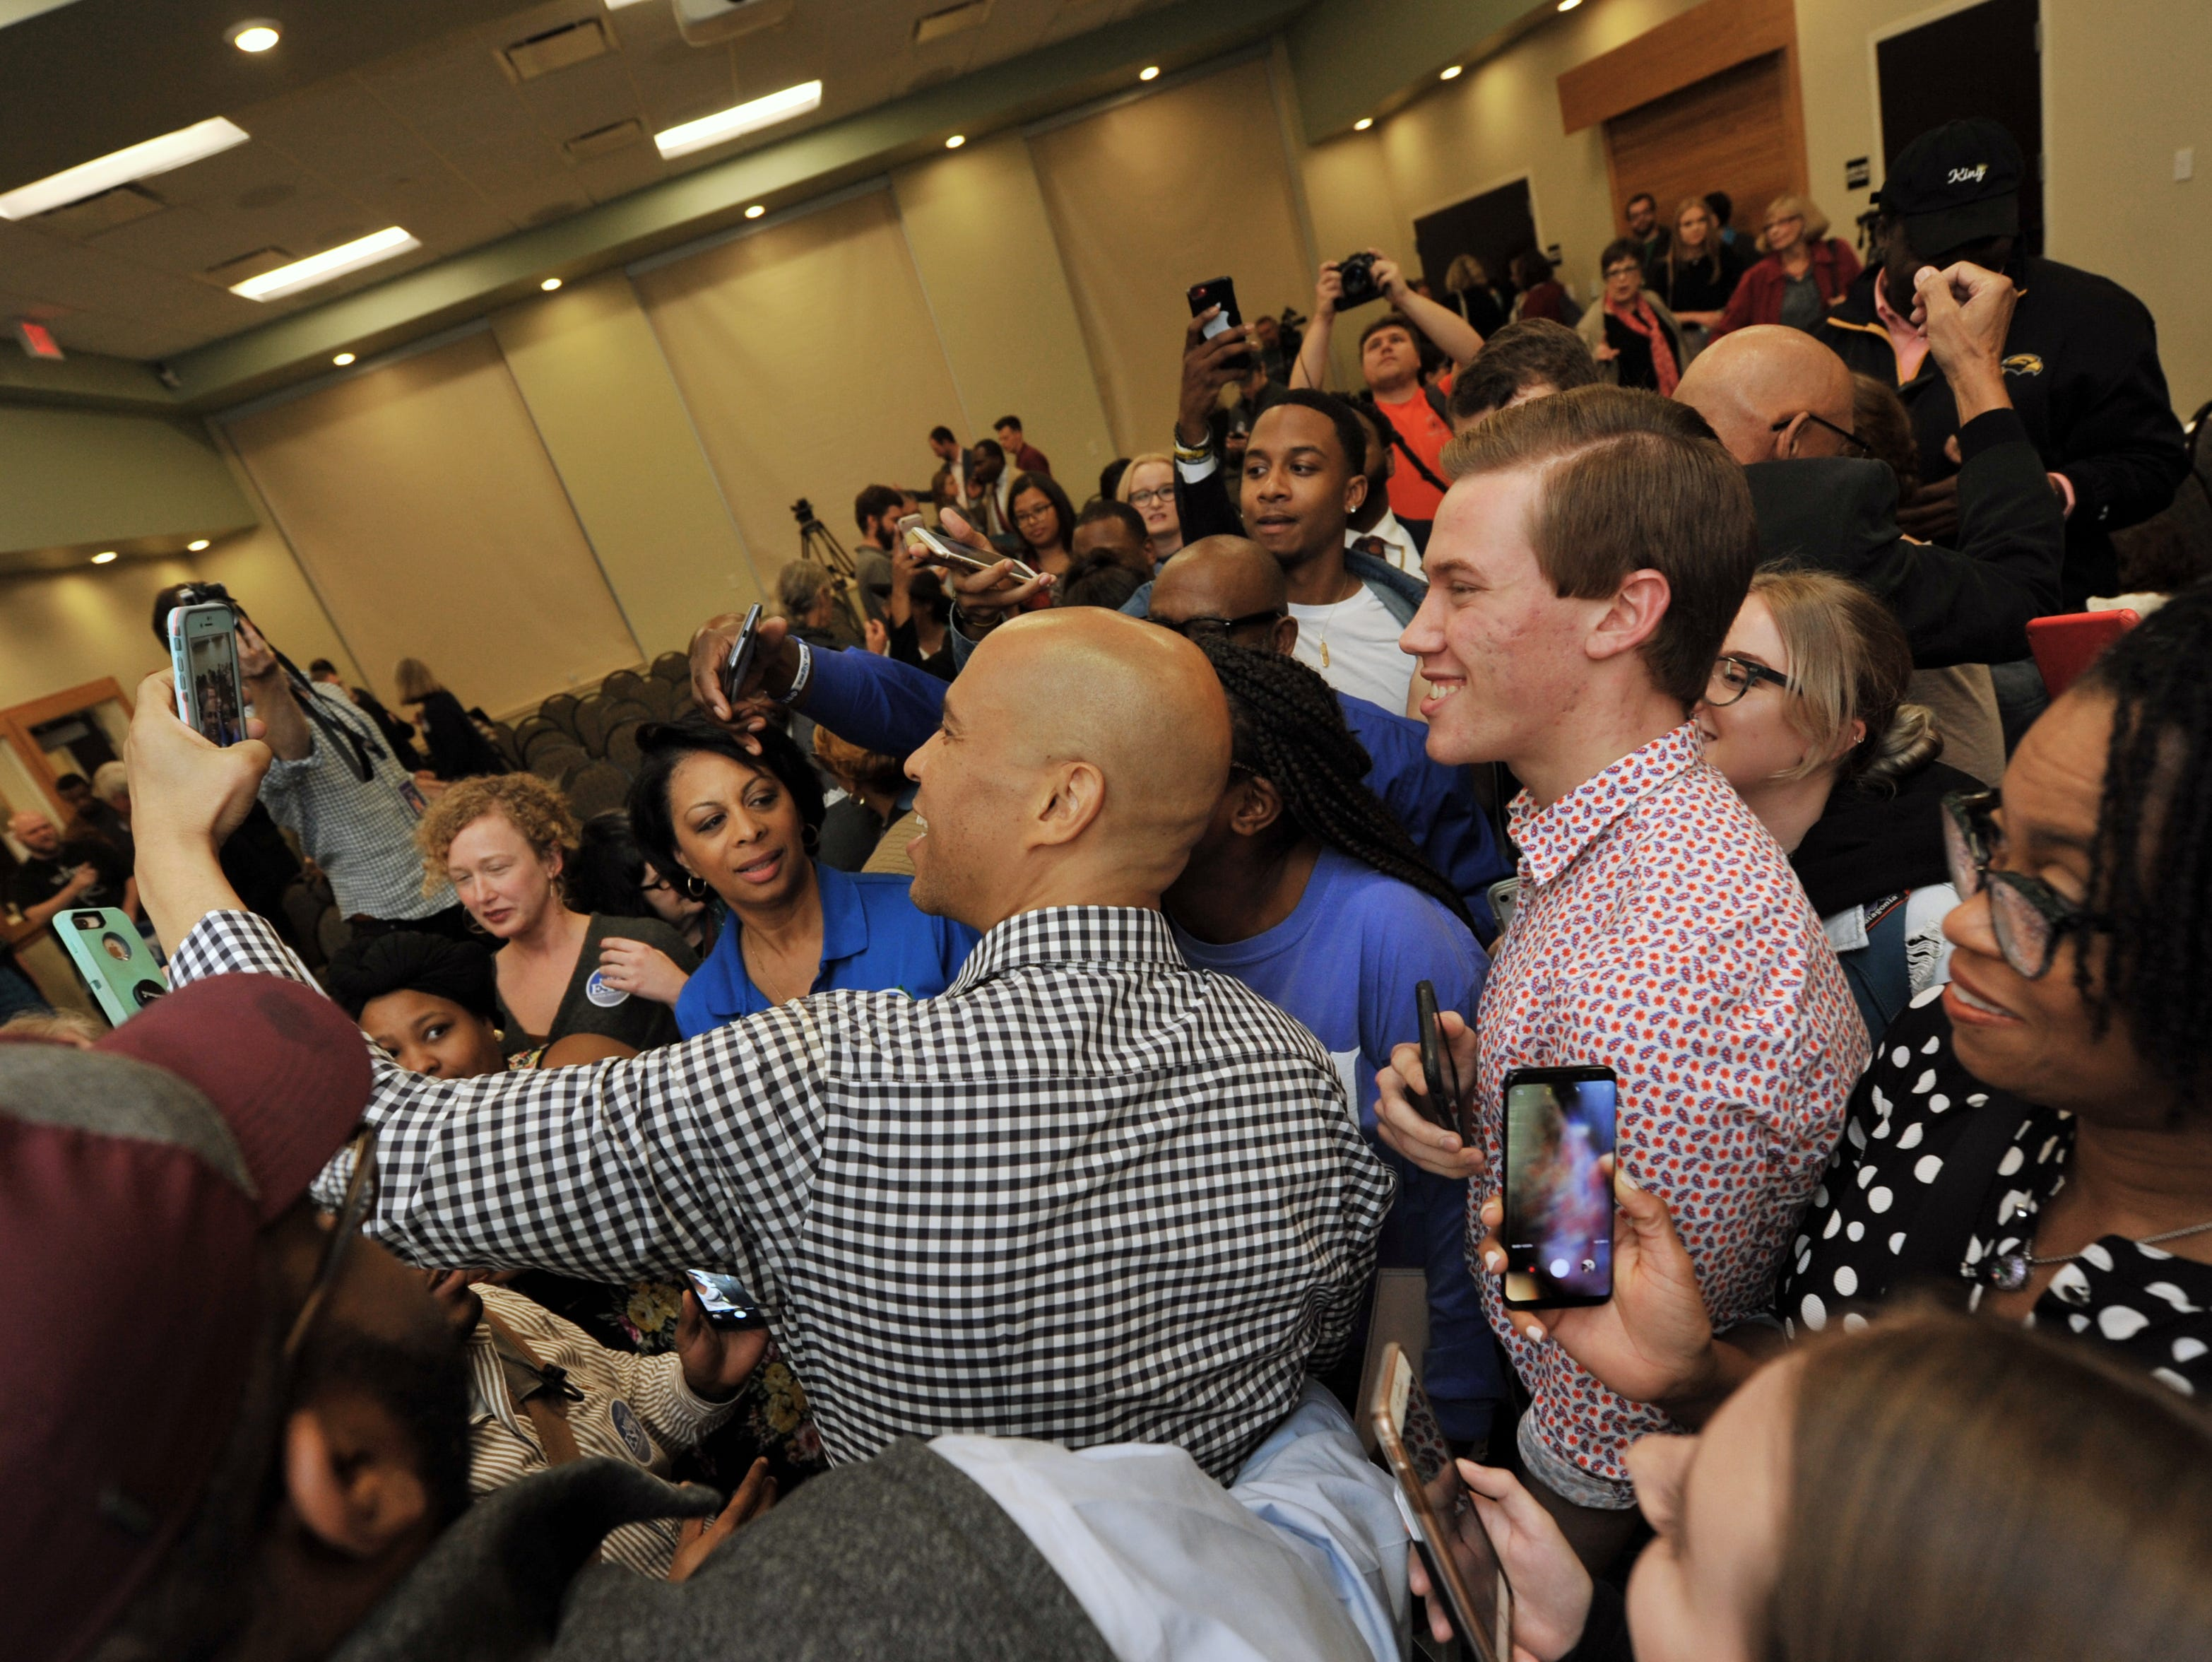 There was no clear exit for New Jersey Sen. Cory Booker after speaking in support of Mississippi Senate candidate Mike Espy at USM Monday, Nov. 19.